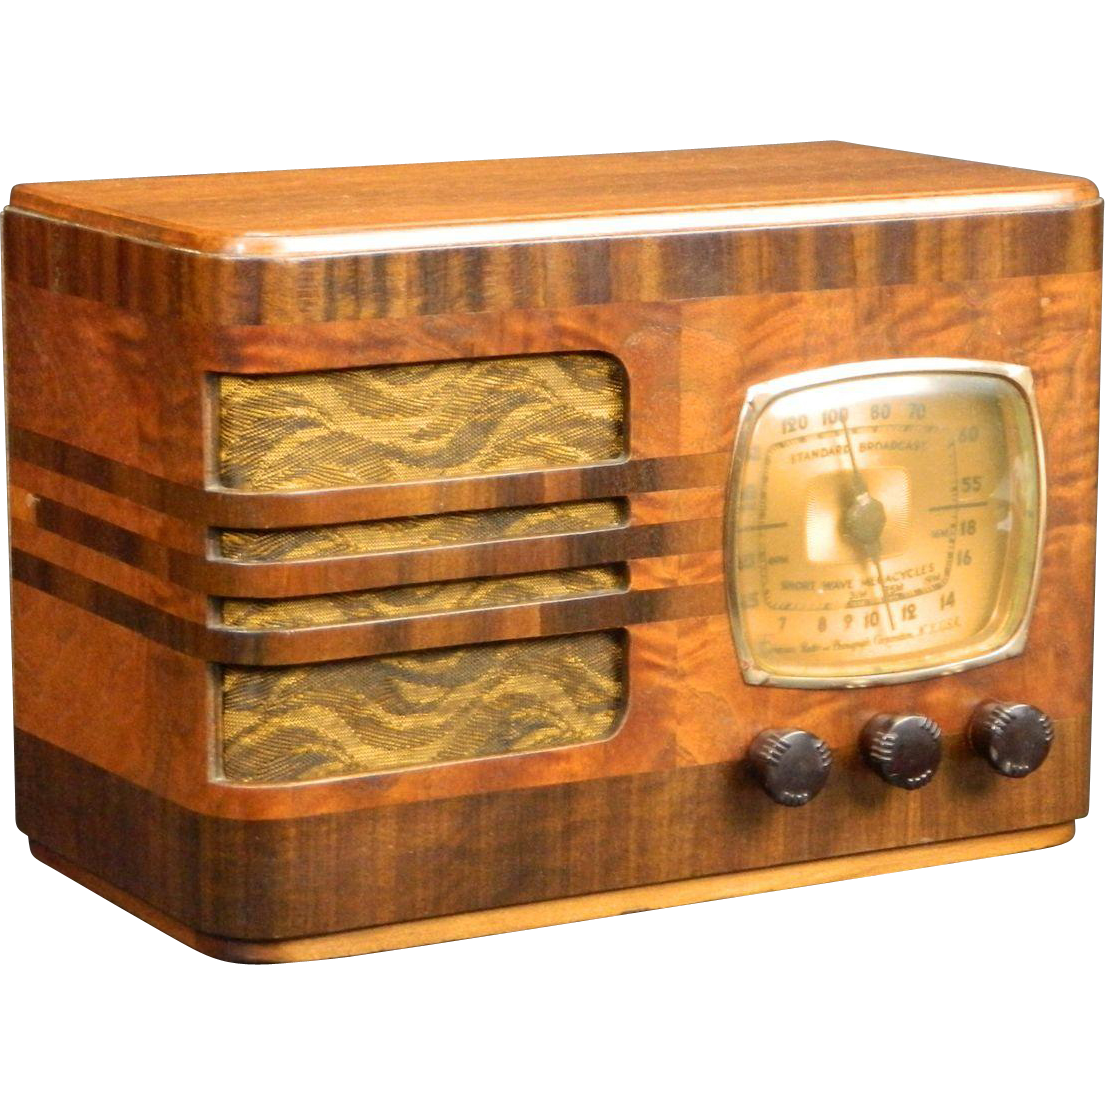 Beautiful Vintage 1939 Emerson Am Radio The Performance Of This Radio Matches Its Beautiful Appearance For Sale At W Antique Radio Vintage Radio Old Radios